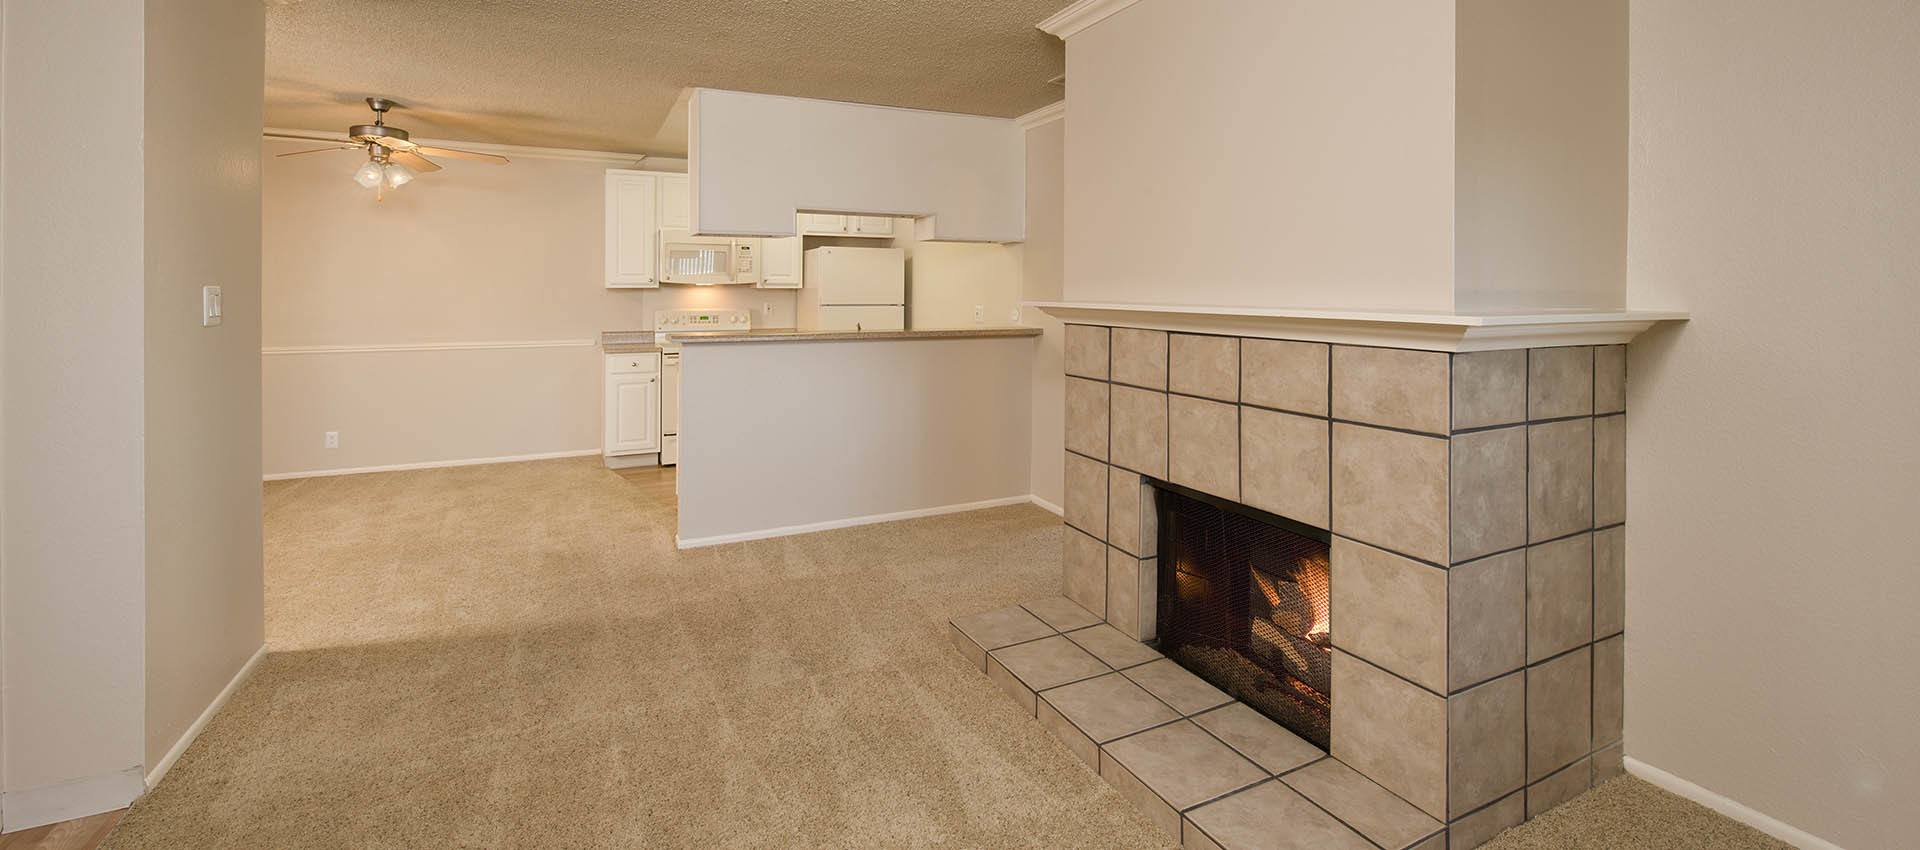 Fireplace Near Dining And Kitchen Area at La Valencia Apartment Homes in Campbell, California